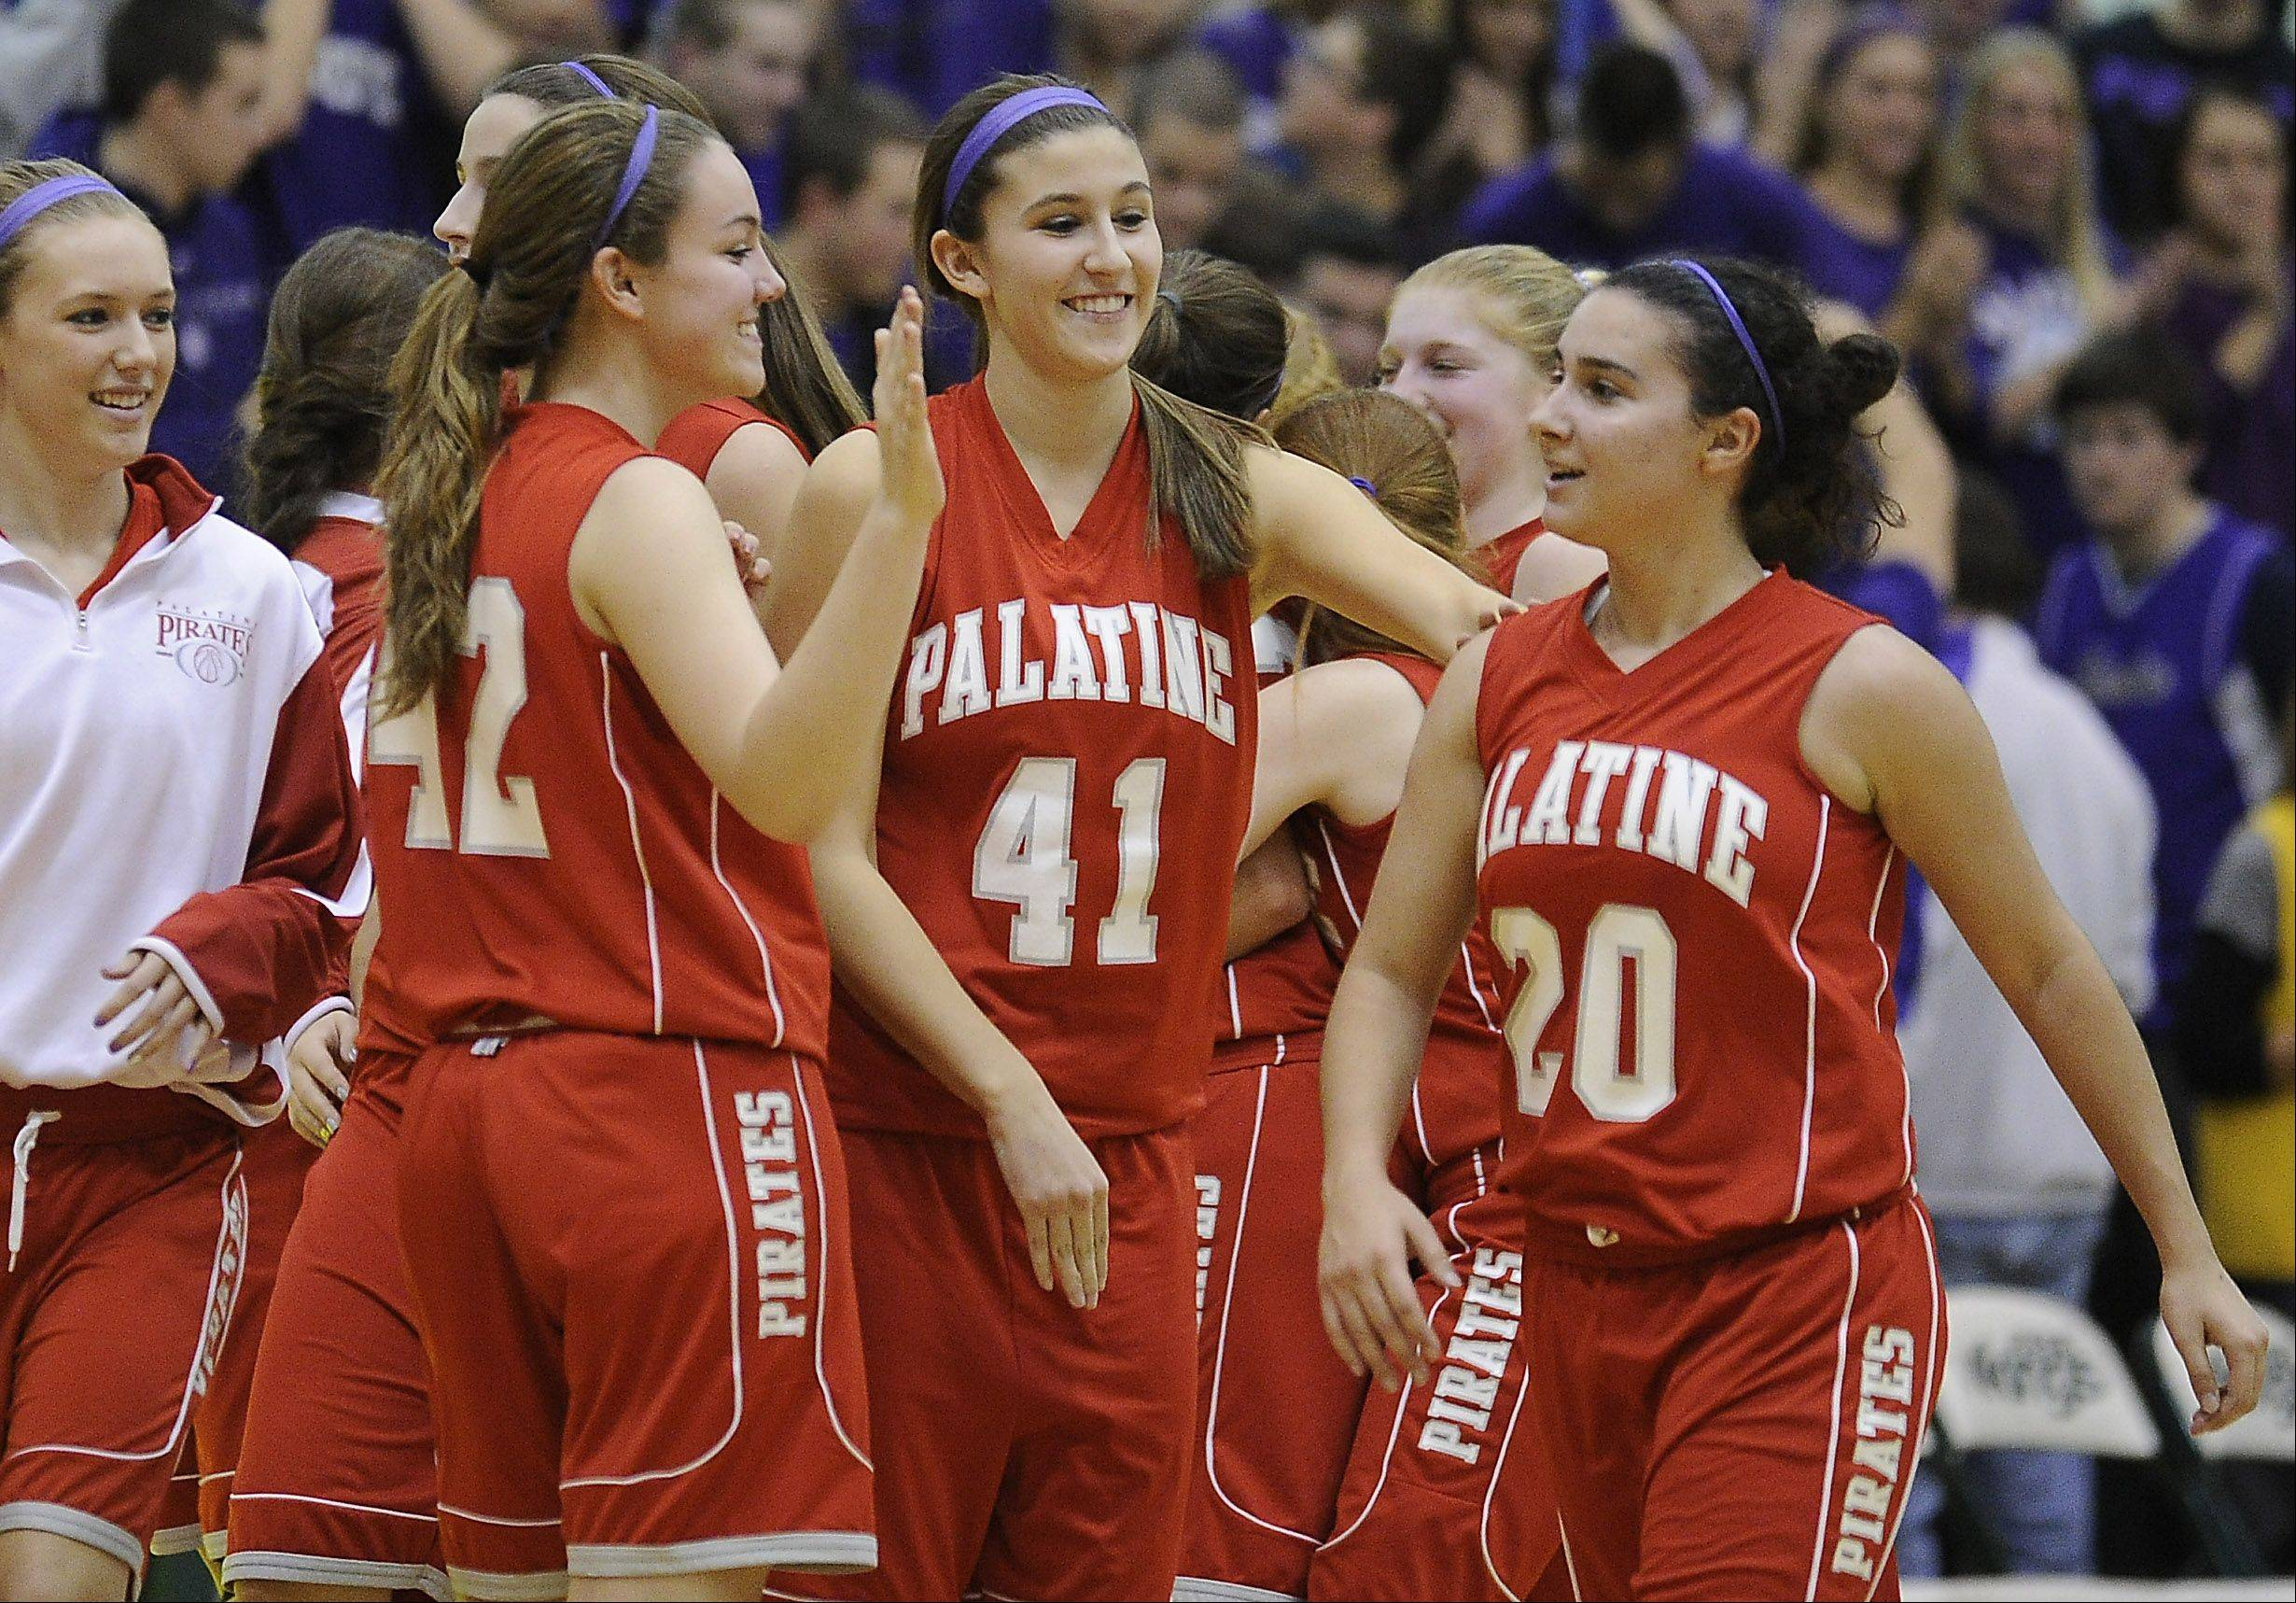 Palatine's Carissa Moulton, Marissa Macini Nia Pappas celebrate their victory over Fremd.